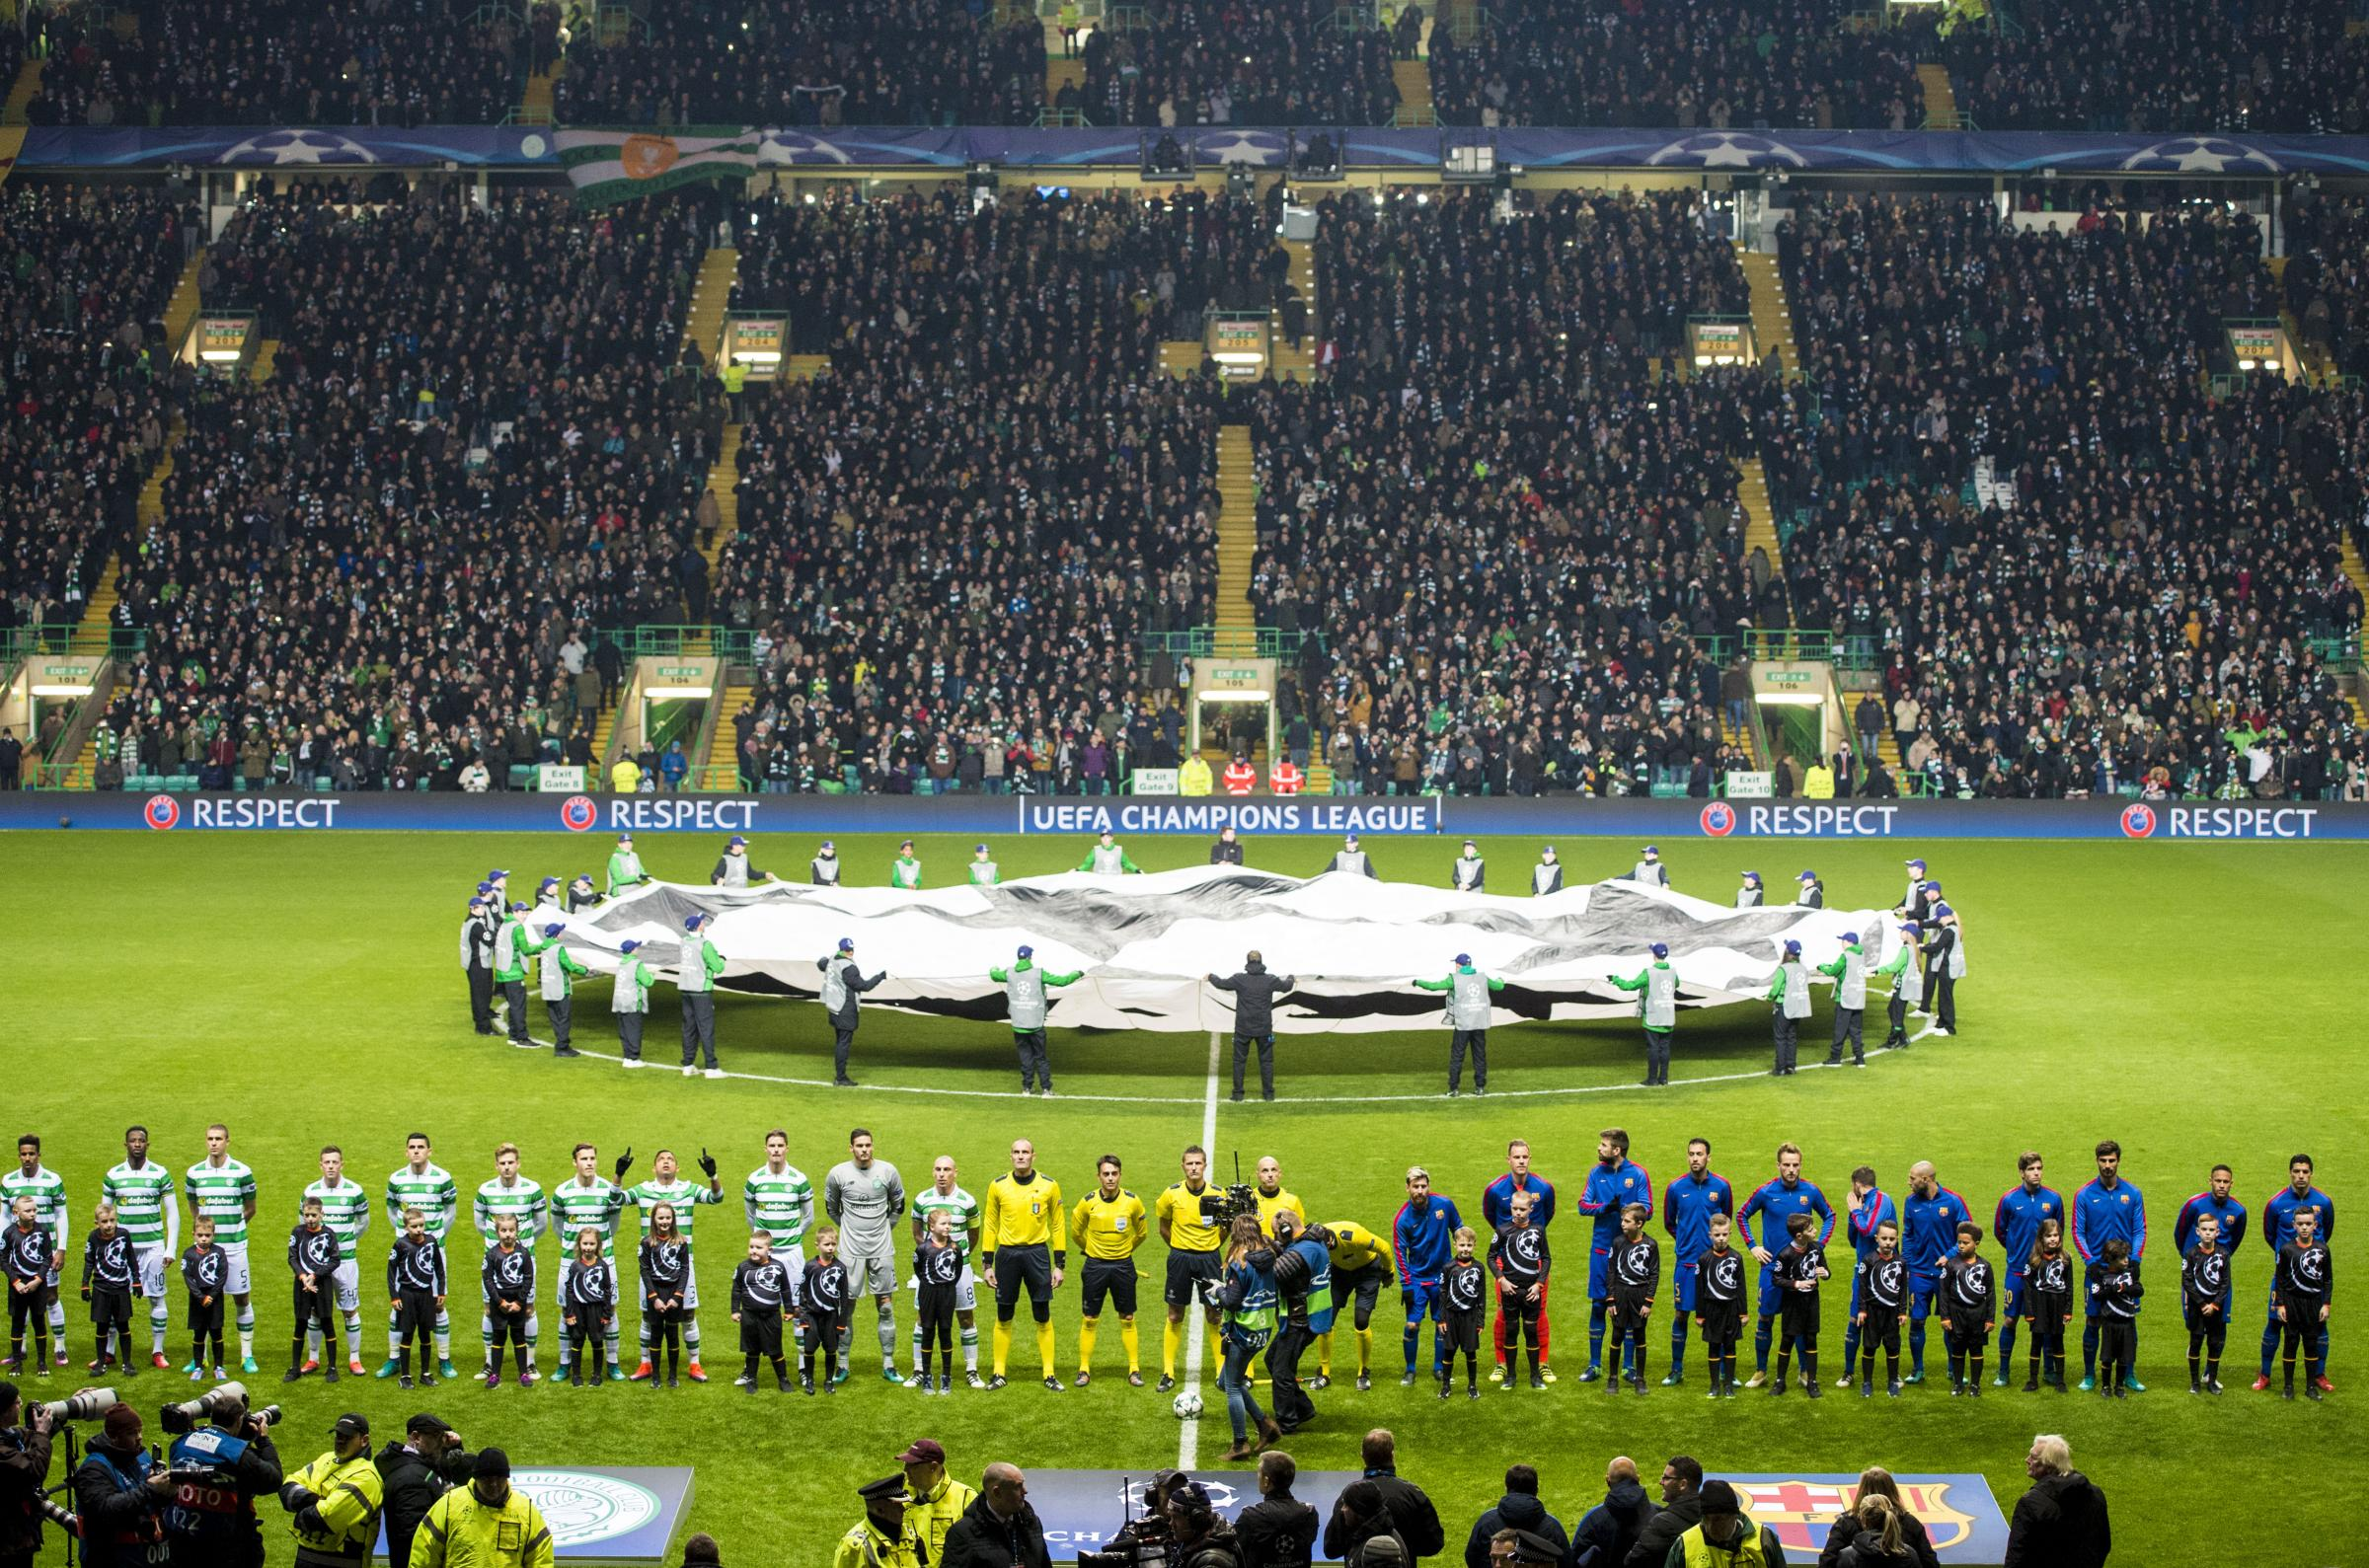 Celtic line up ahead of their 2-0 defeat to Barcelona